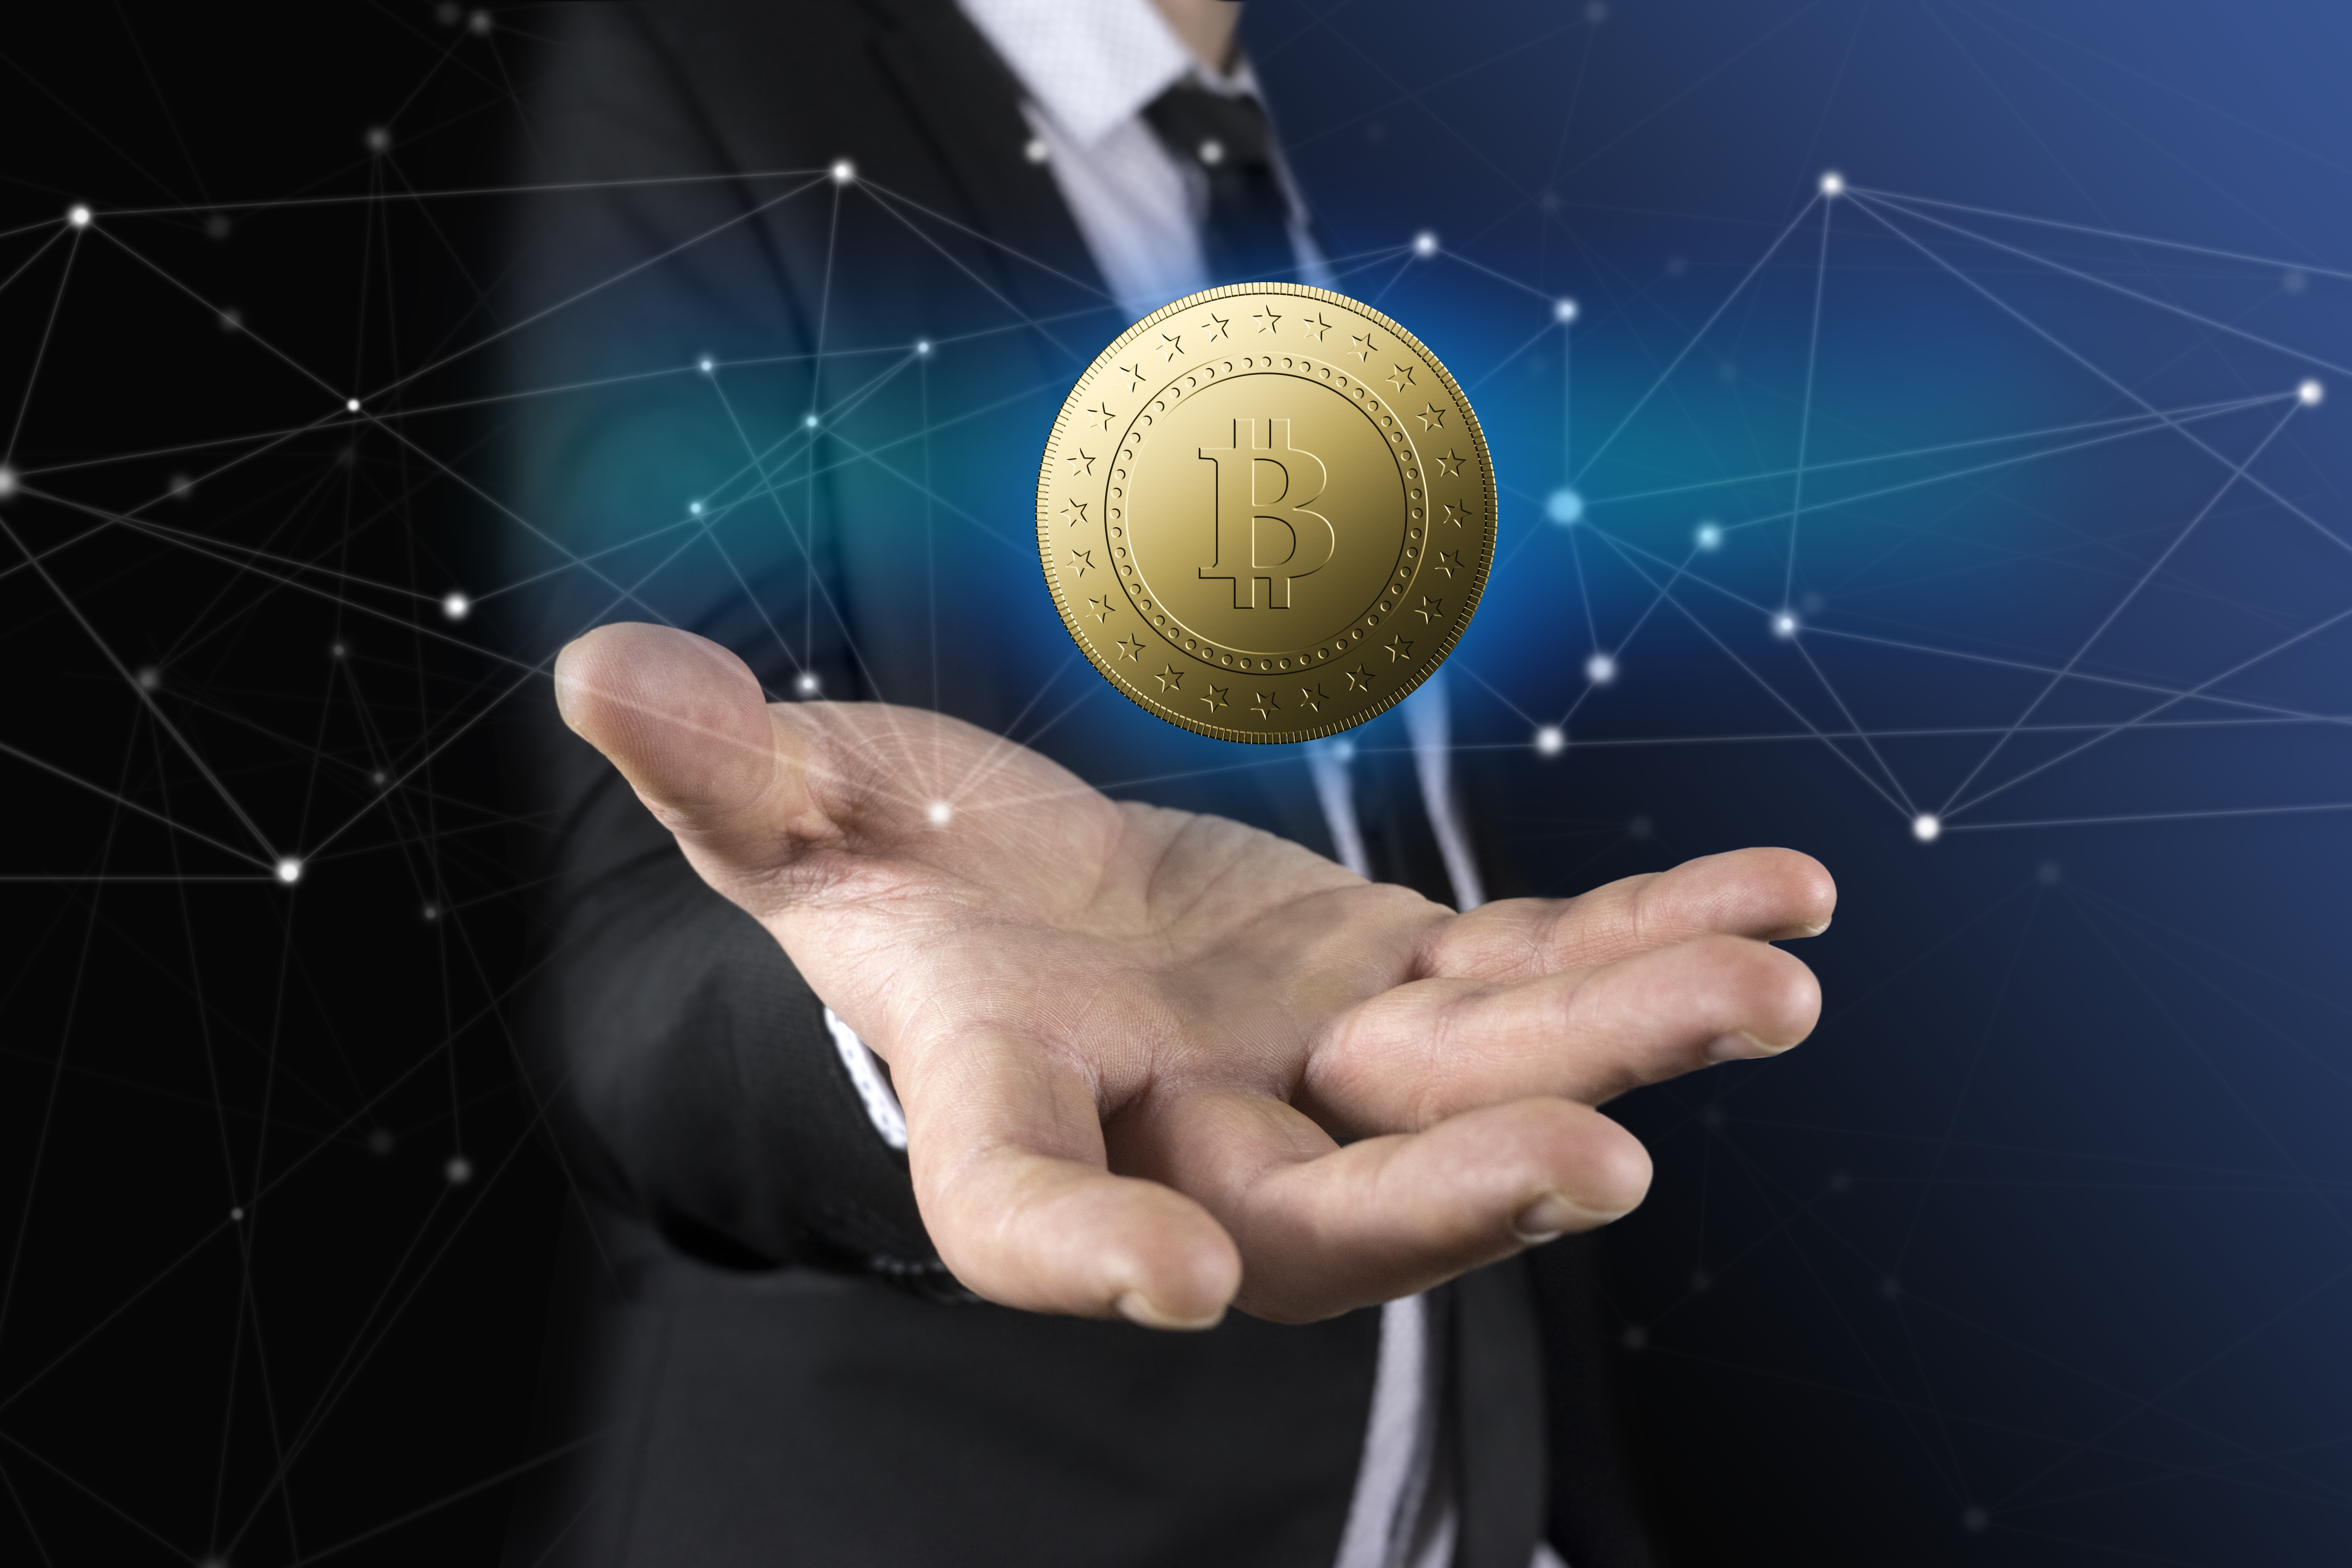 Business man with black suit holding bitcoin on hand